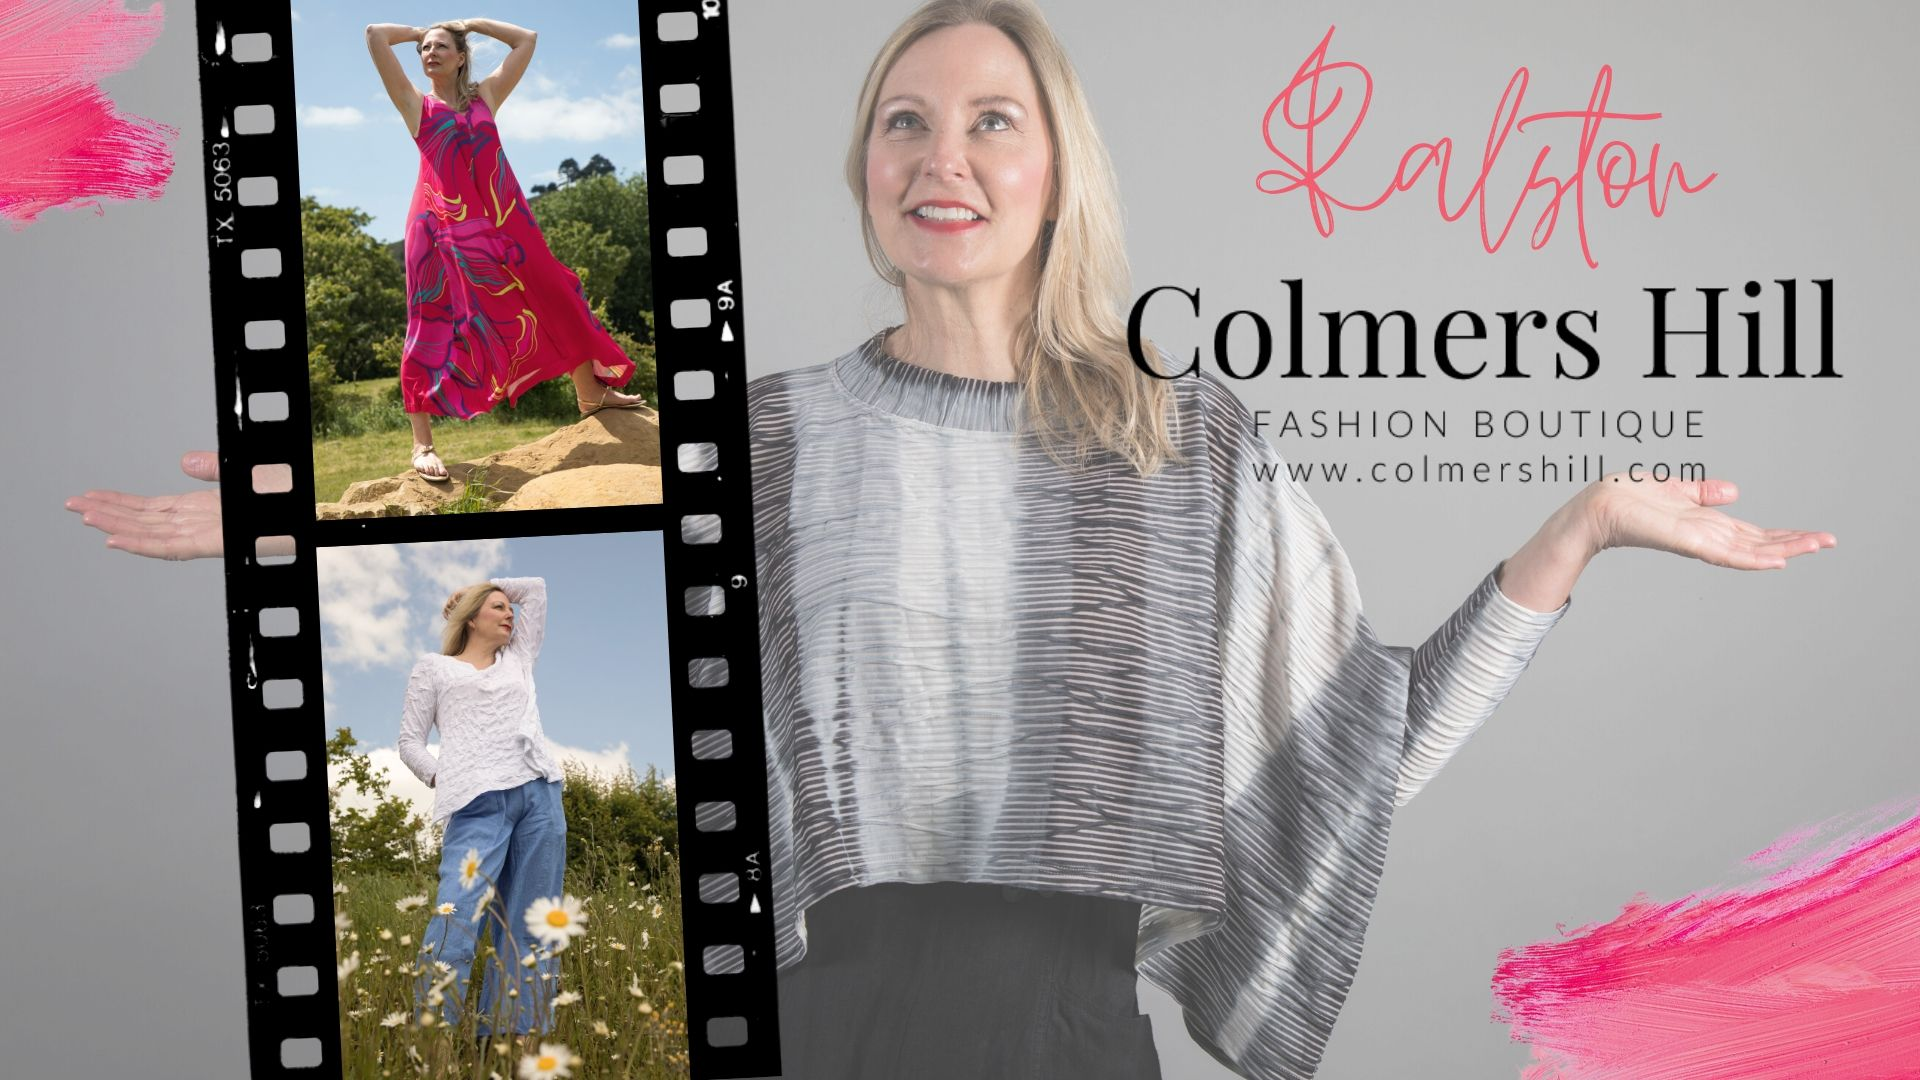 Linda Ralston talks about her clothing collection for Spring Summer 2020 and Colmers Hill Fashion Boutique shows off its collection as it re-opens its doors after lockdown